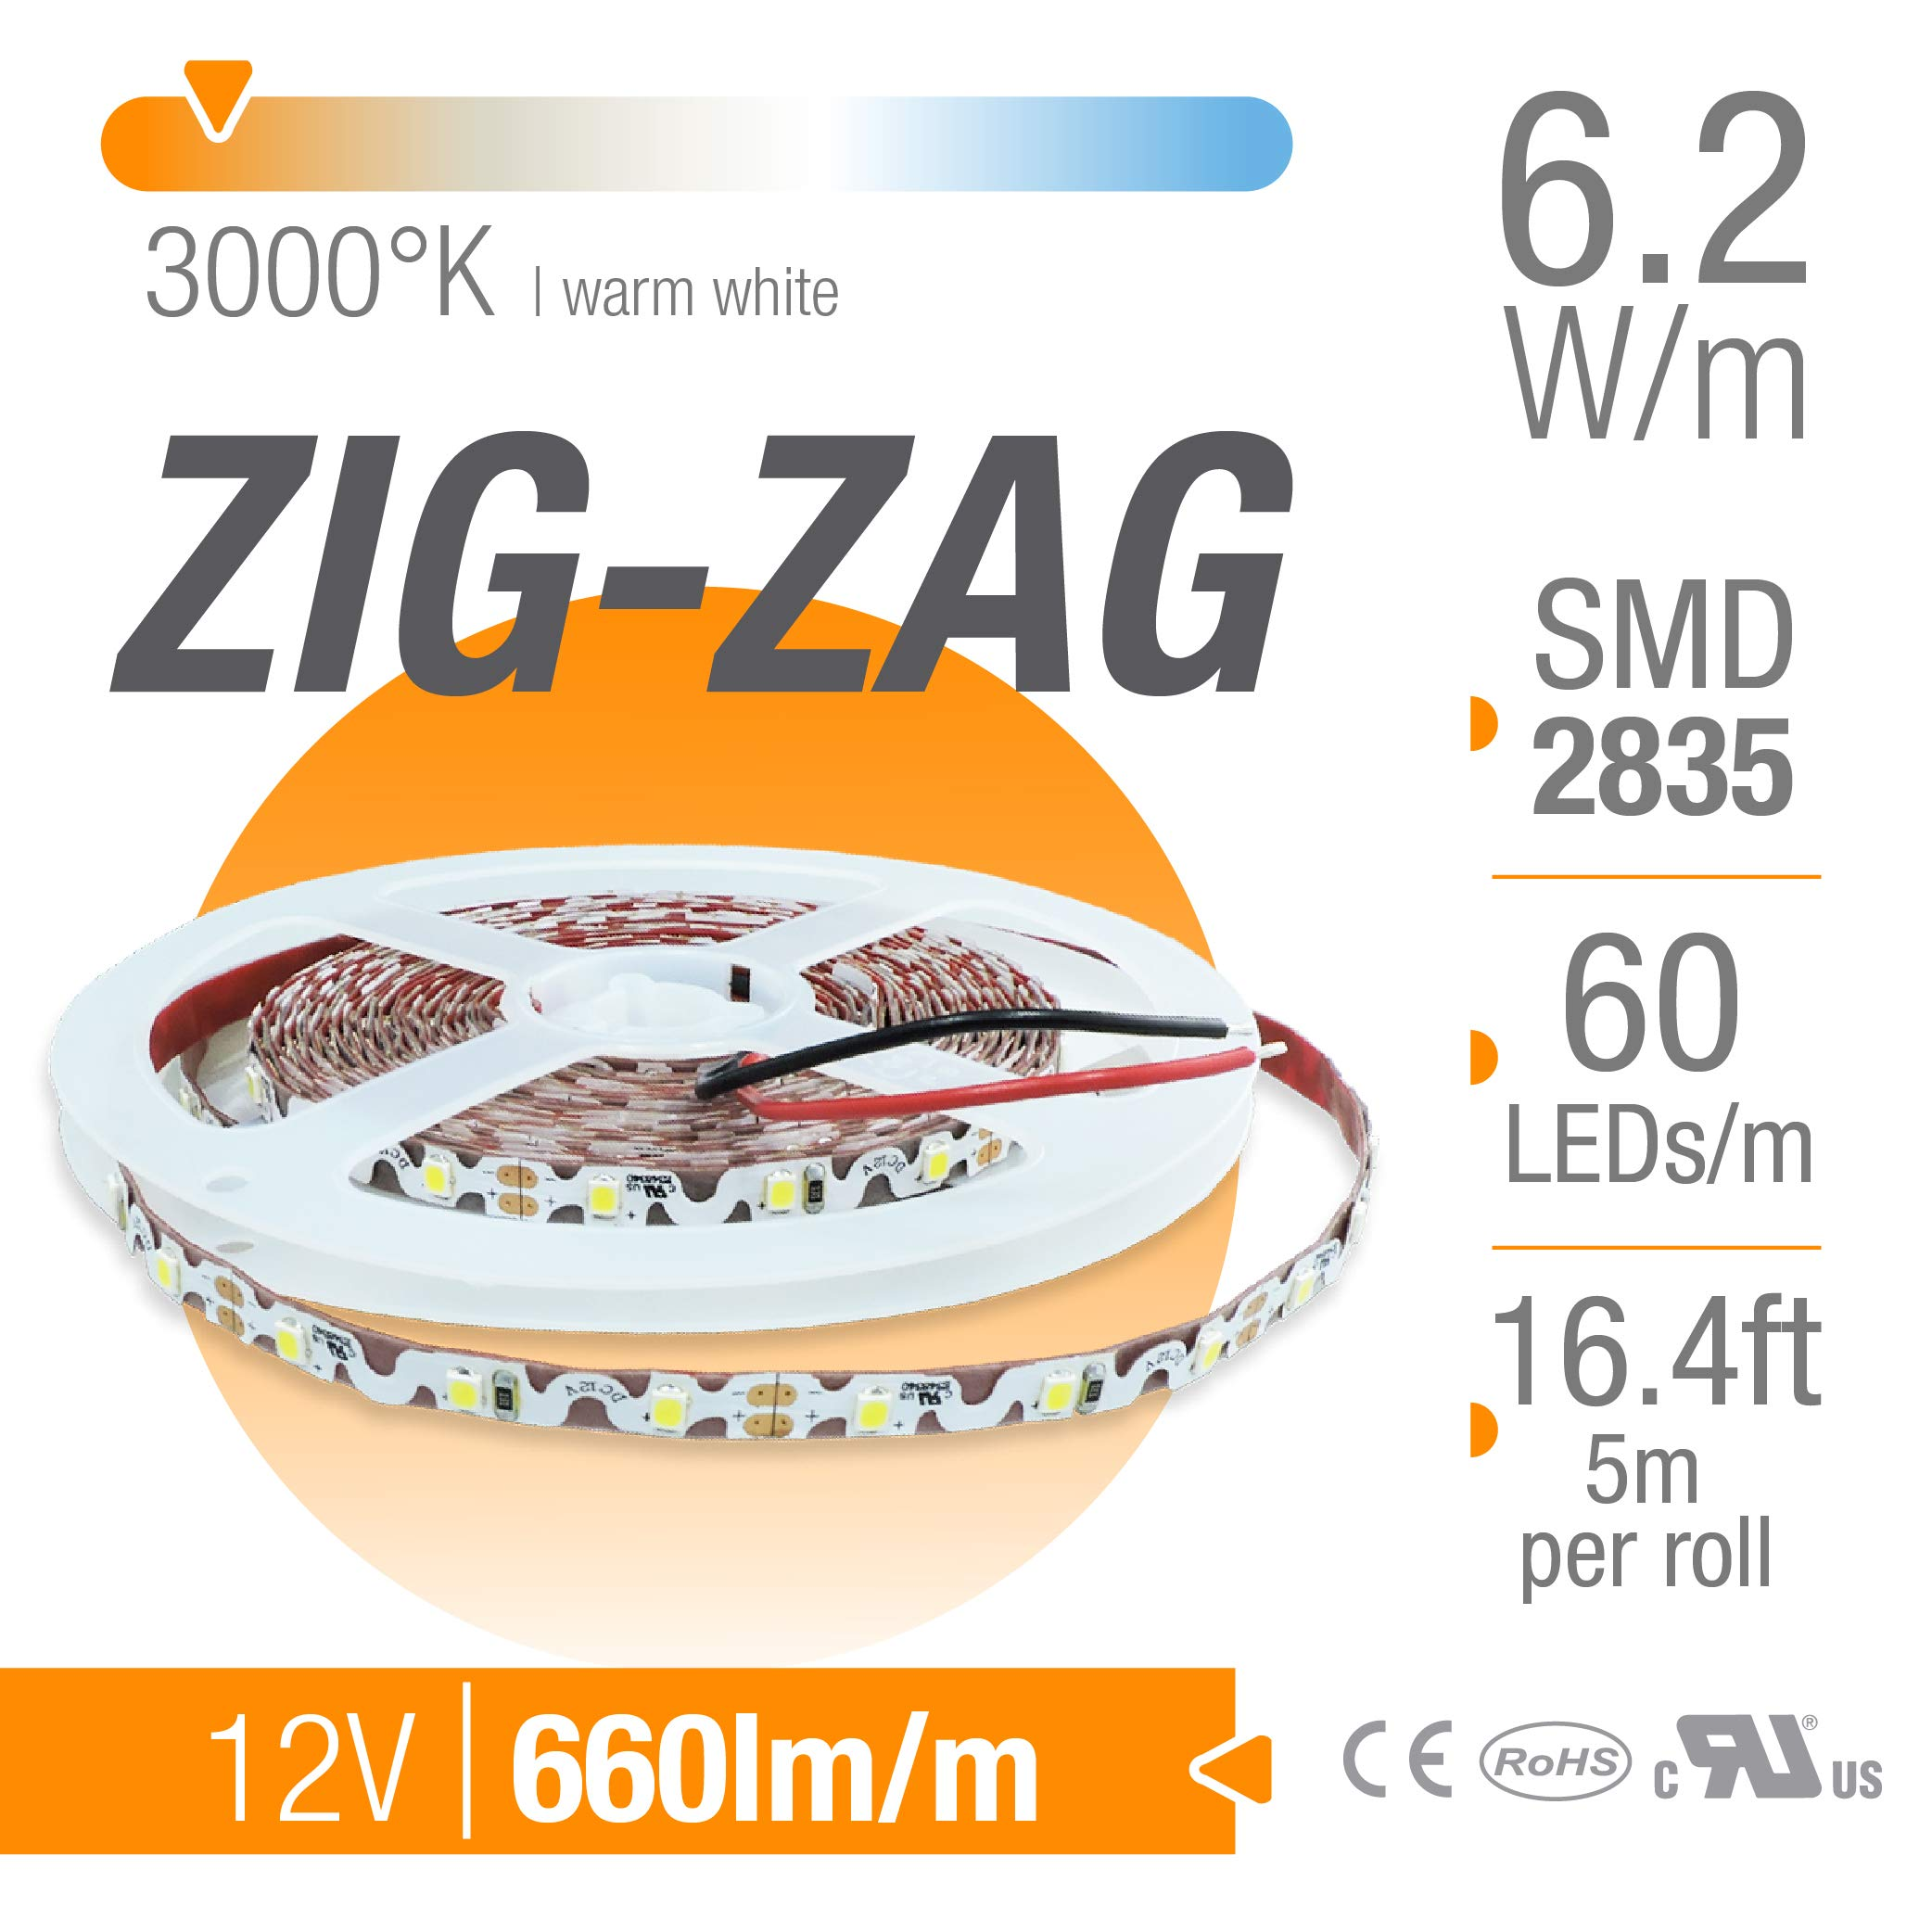 DEMASLED - SMD 2835 Zig Zag LED Flexible Strip - Warm White (IP 33) 13,2W/m (Warm White) - 6A